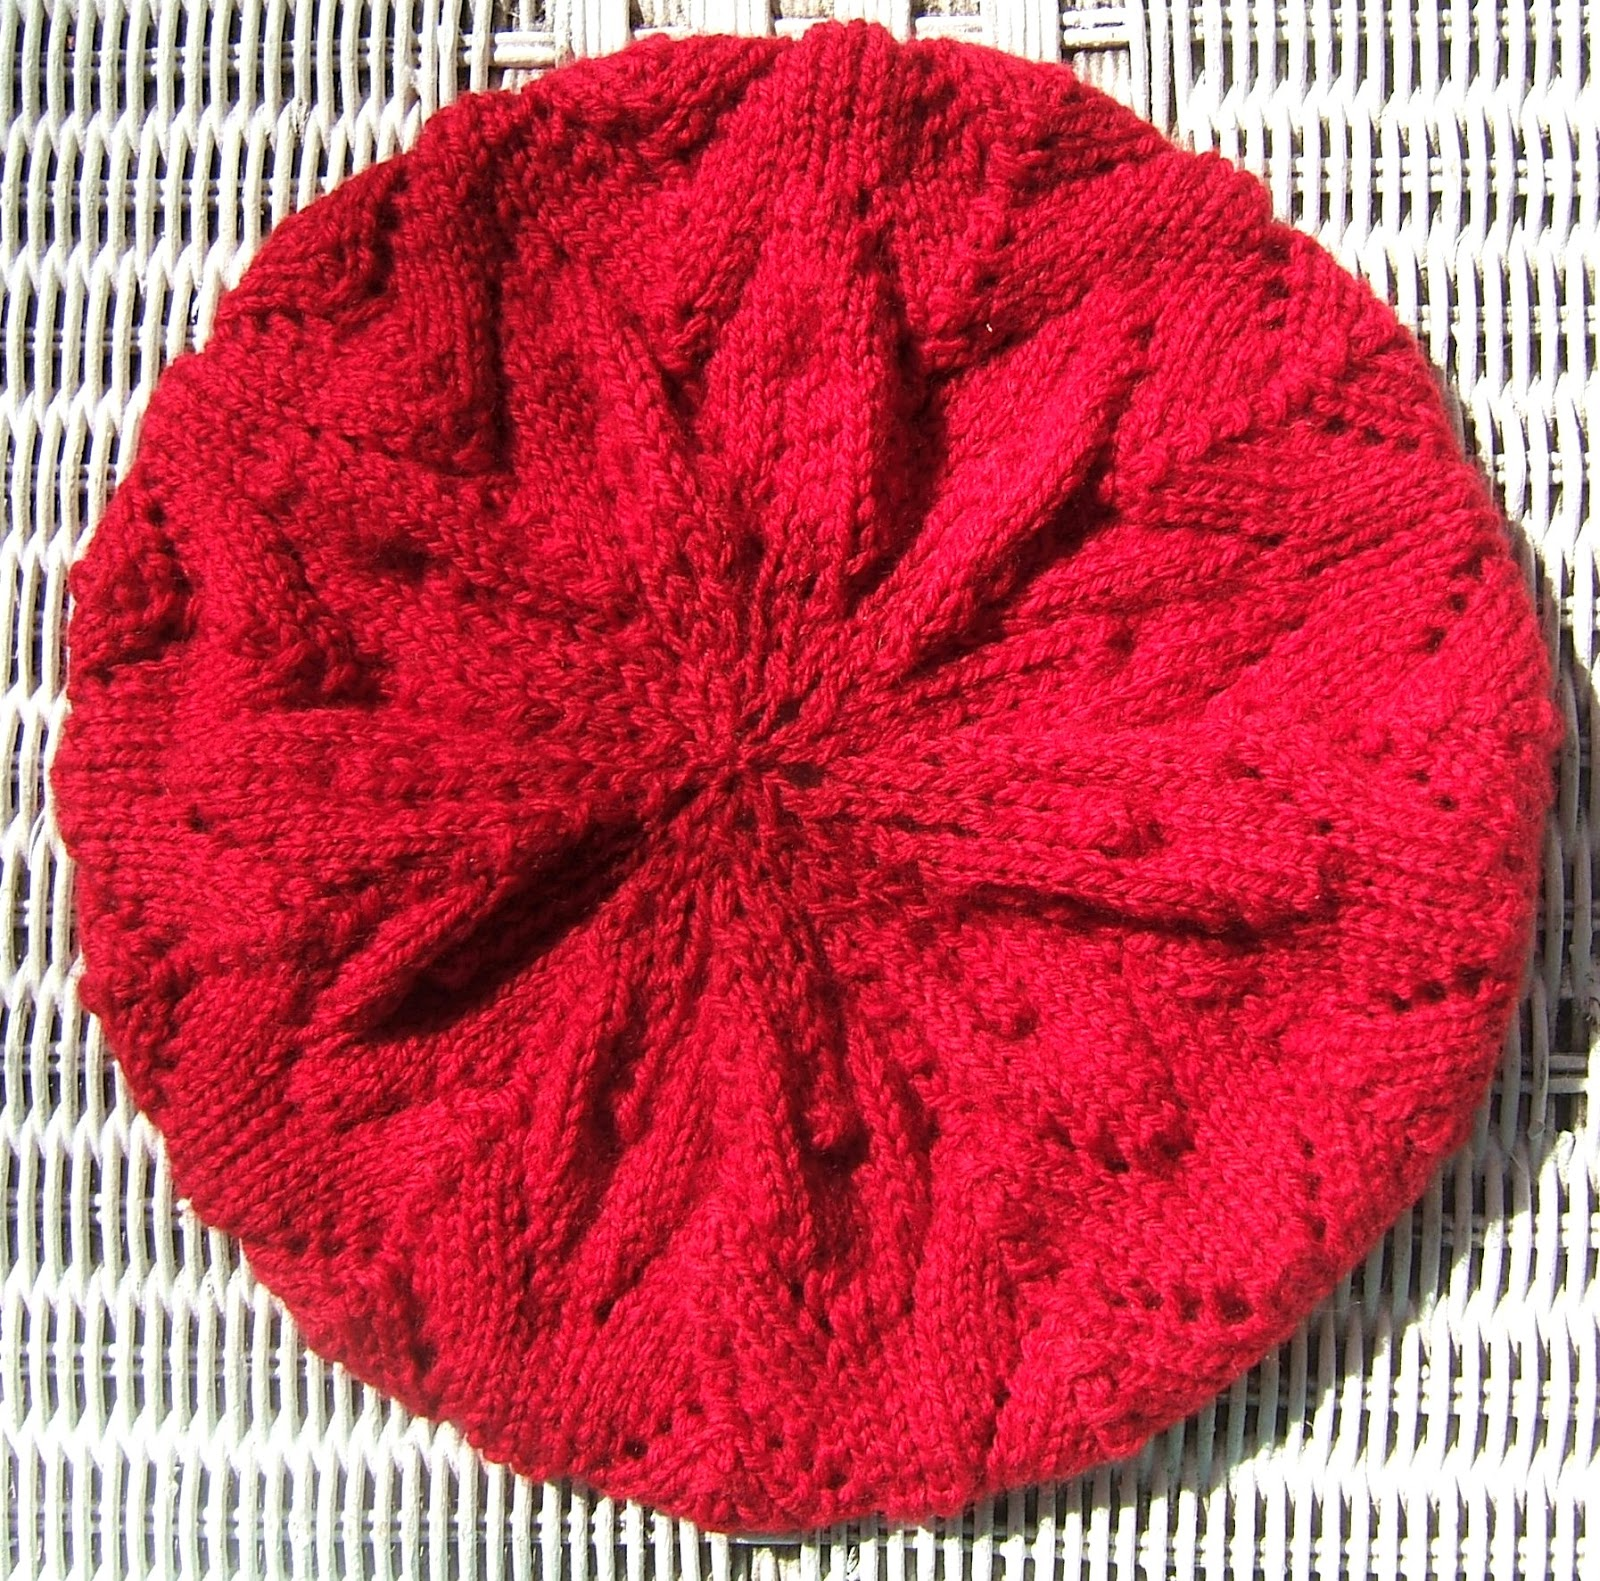 Aussie knitting threads the red beret just finished this lace beret for my daughter and it was time consuming but not difficult this was the basic pattern meret beret with some variations bankloansurffo Images